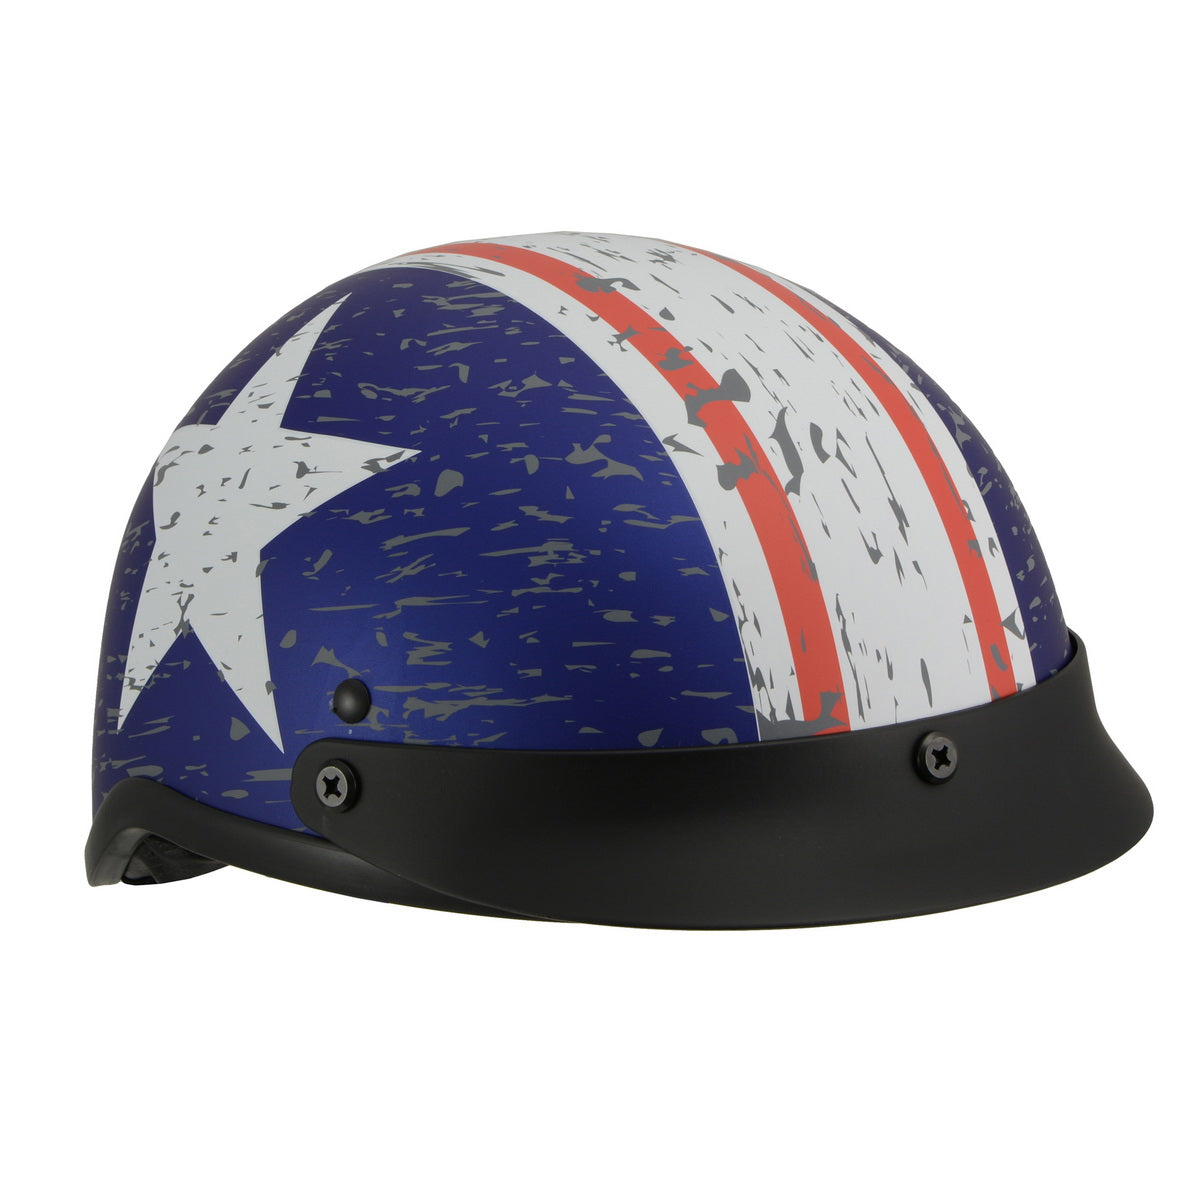 Milwaukee Performance Helmets MPH9781 Black 'Vintage Star' DOT Half